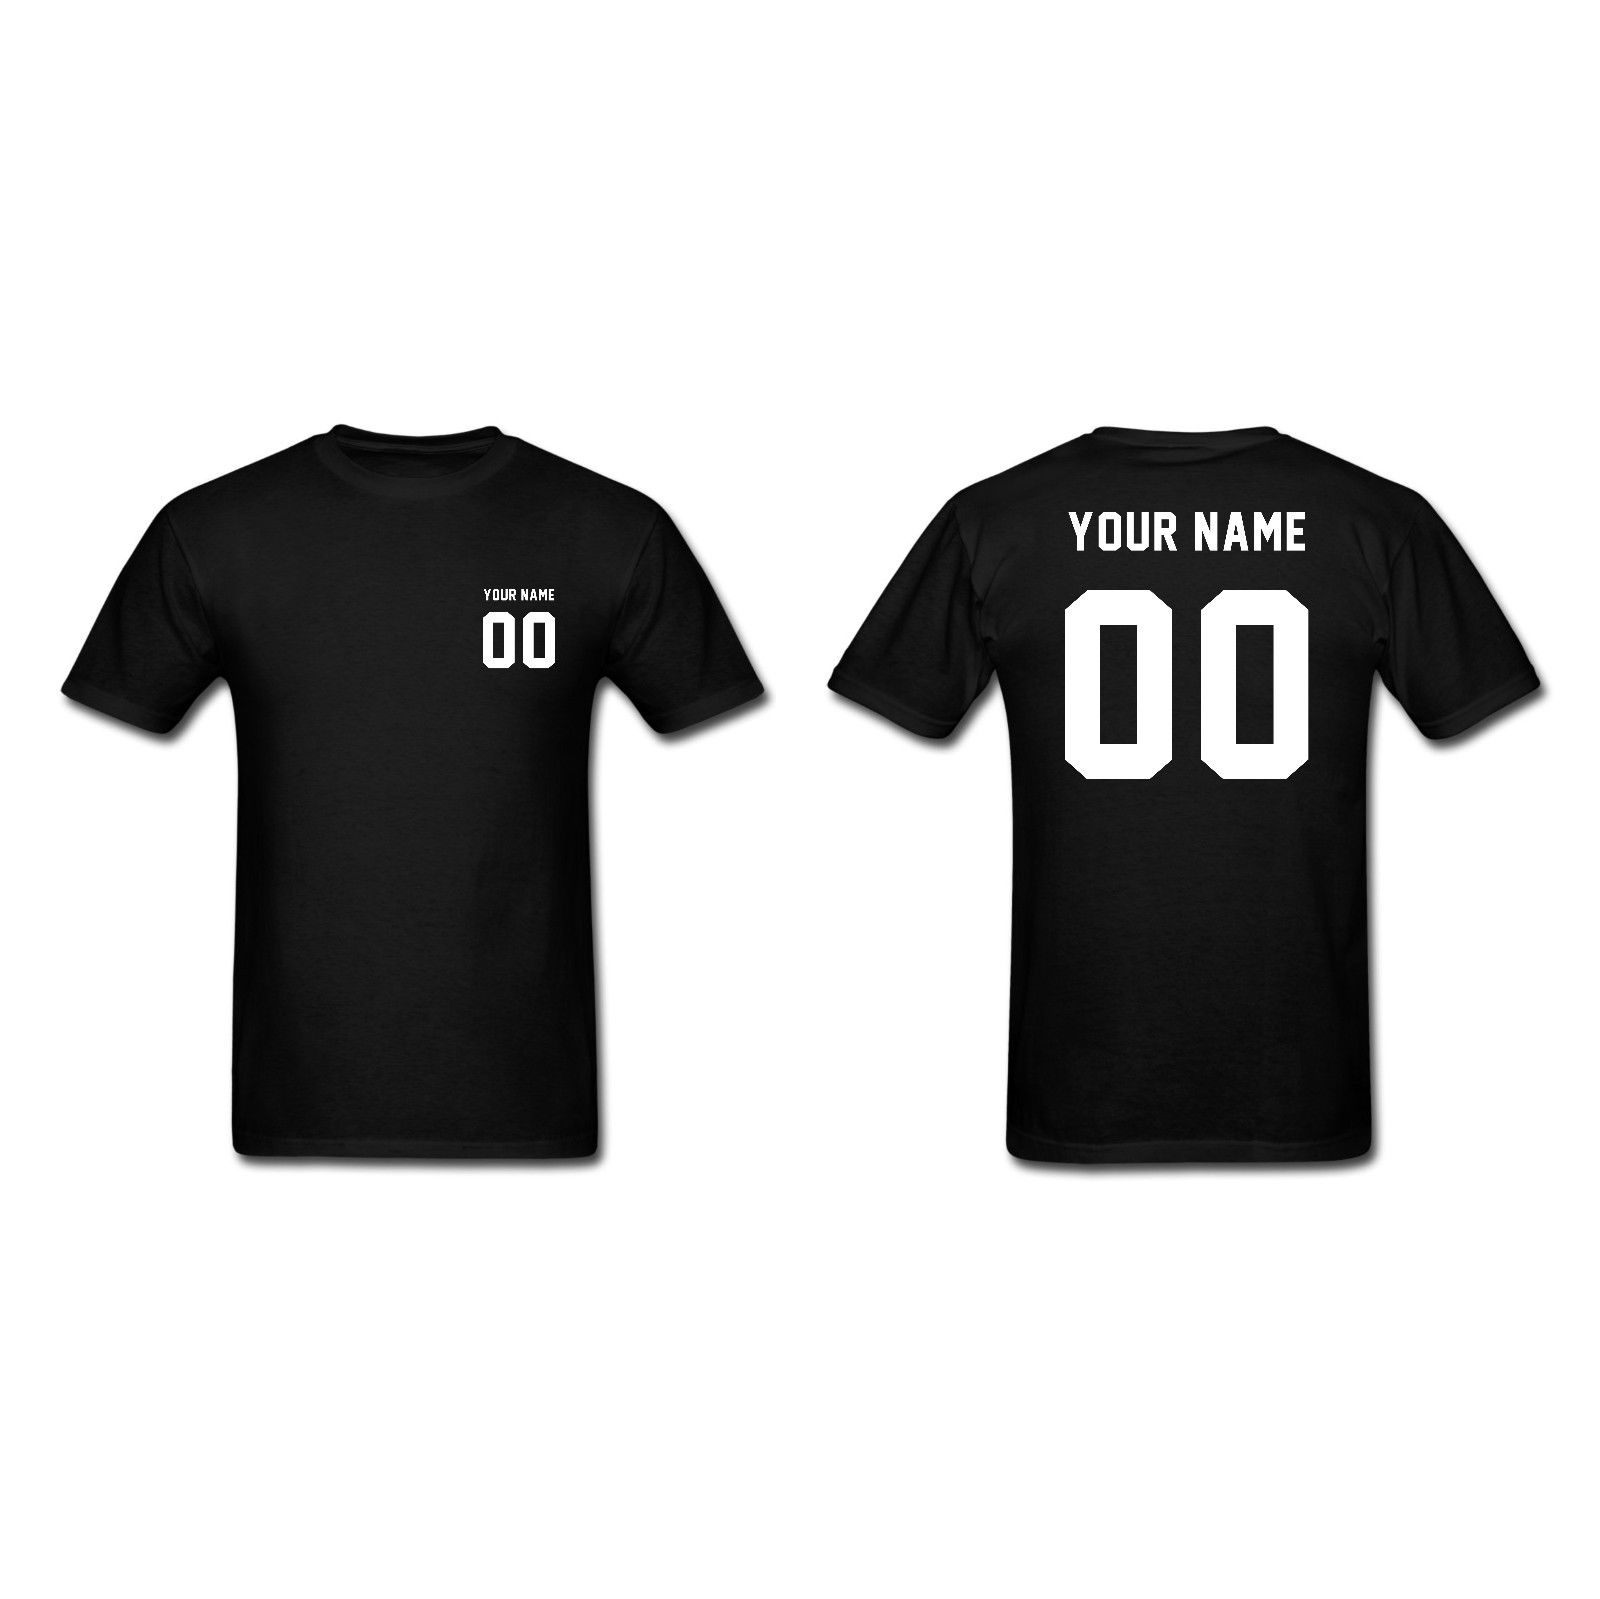 Black t shirt front and back - Custom Personalized Mens Cotton T Shirt Name And Number Print Front And Back Round Neck